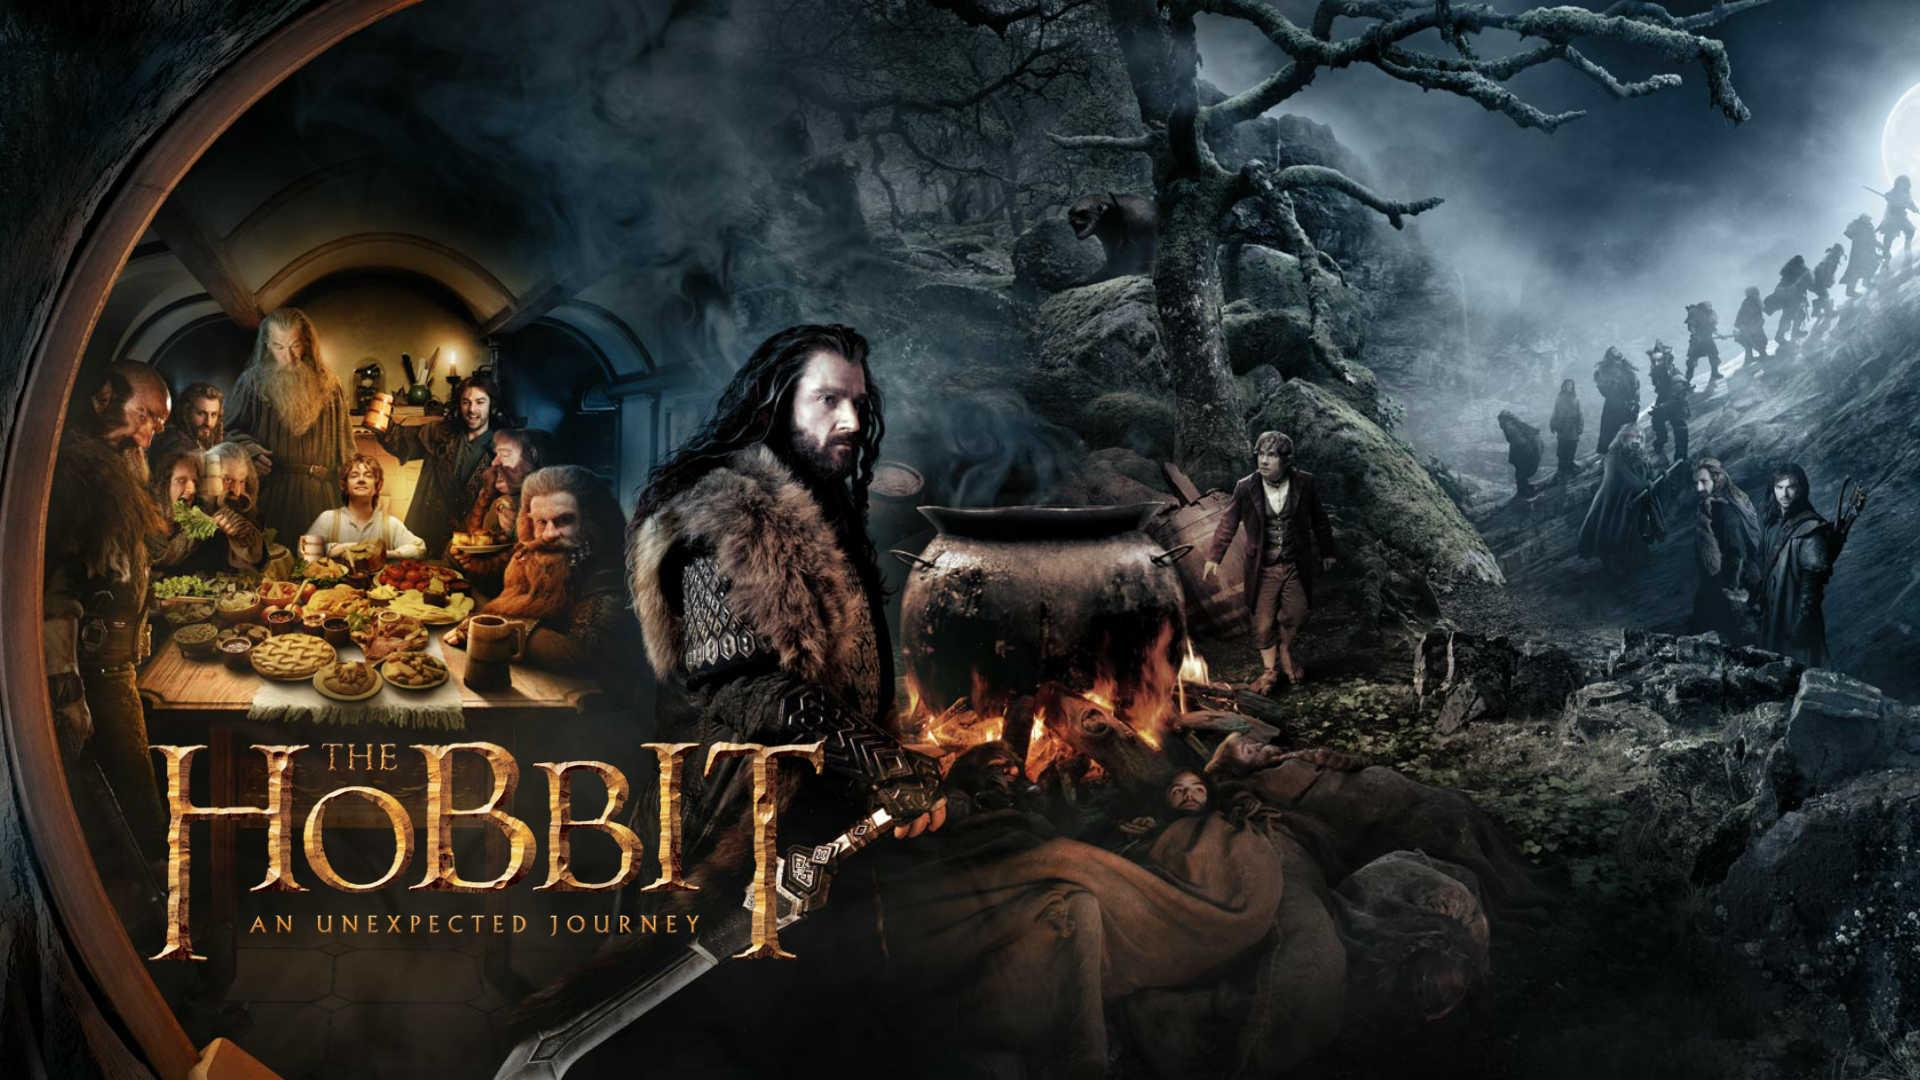 The Hobbit Bilbo and Gandalf